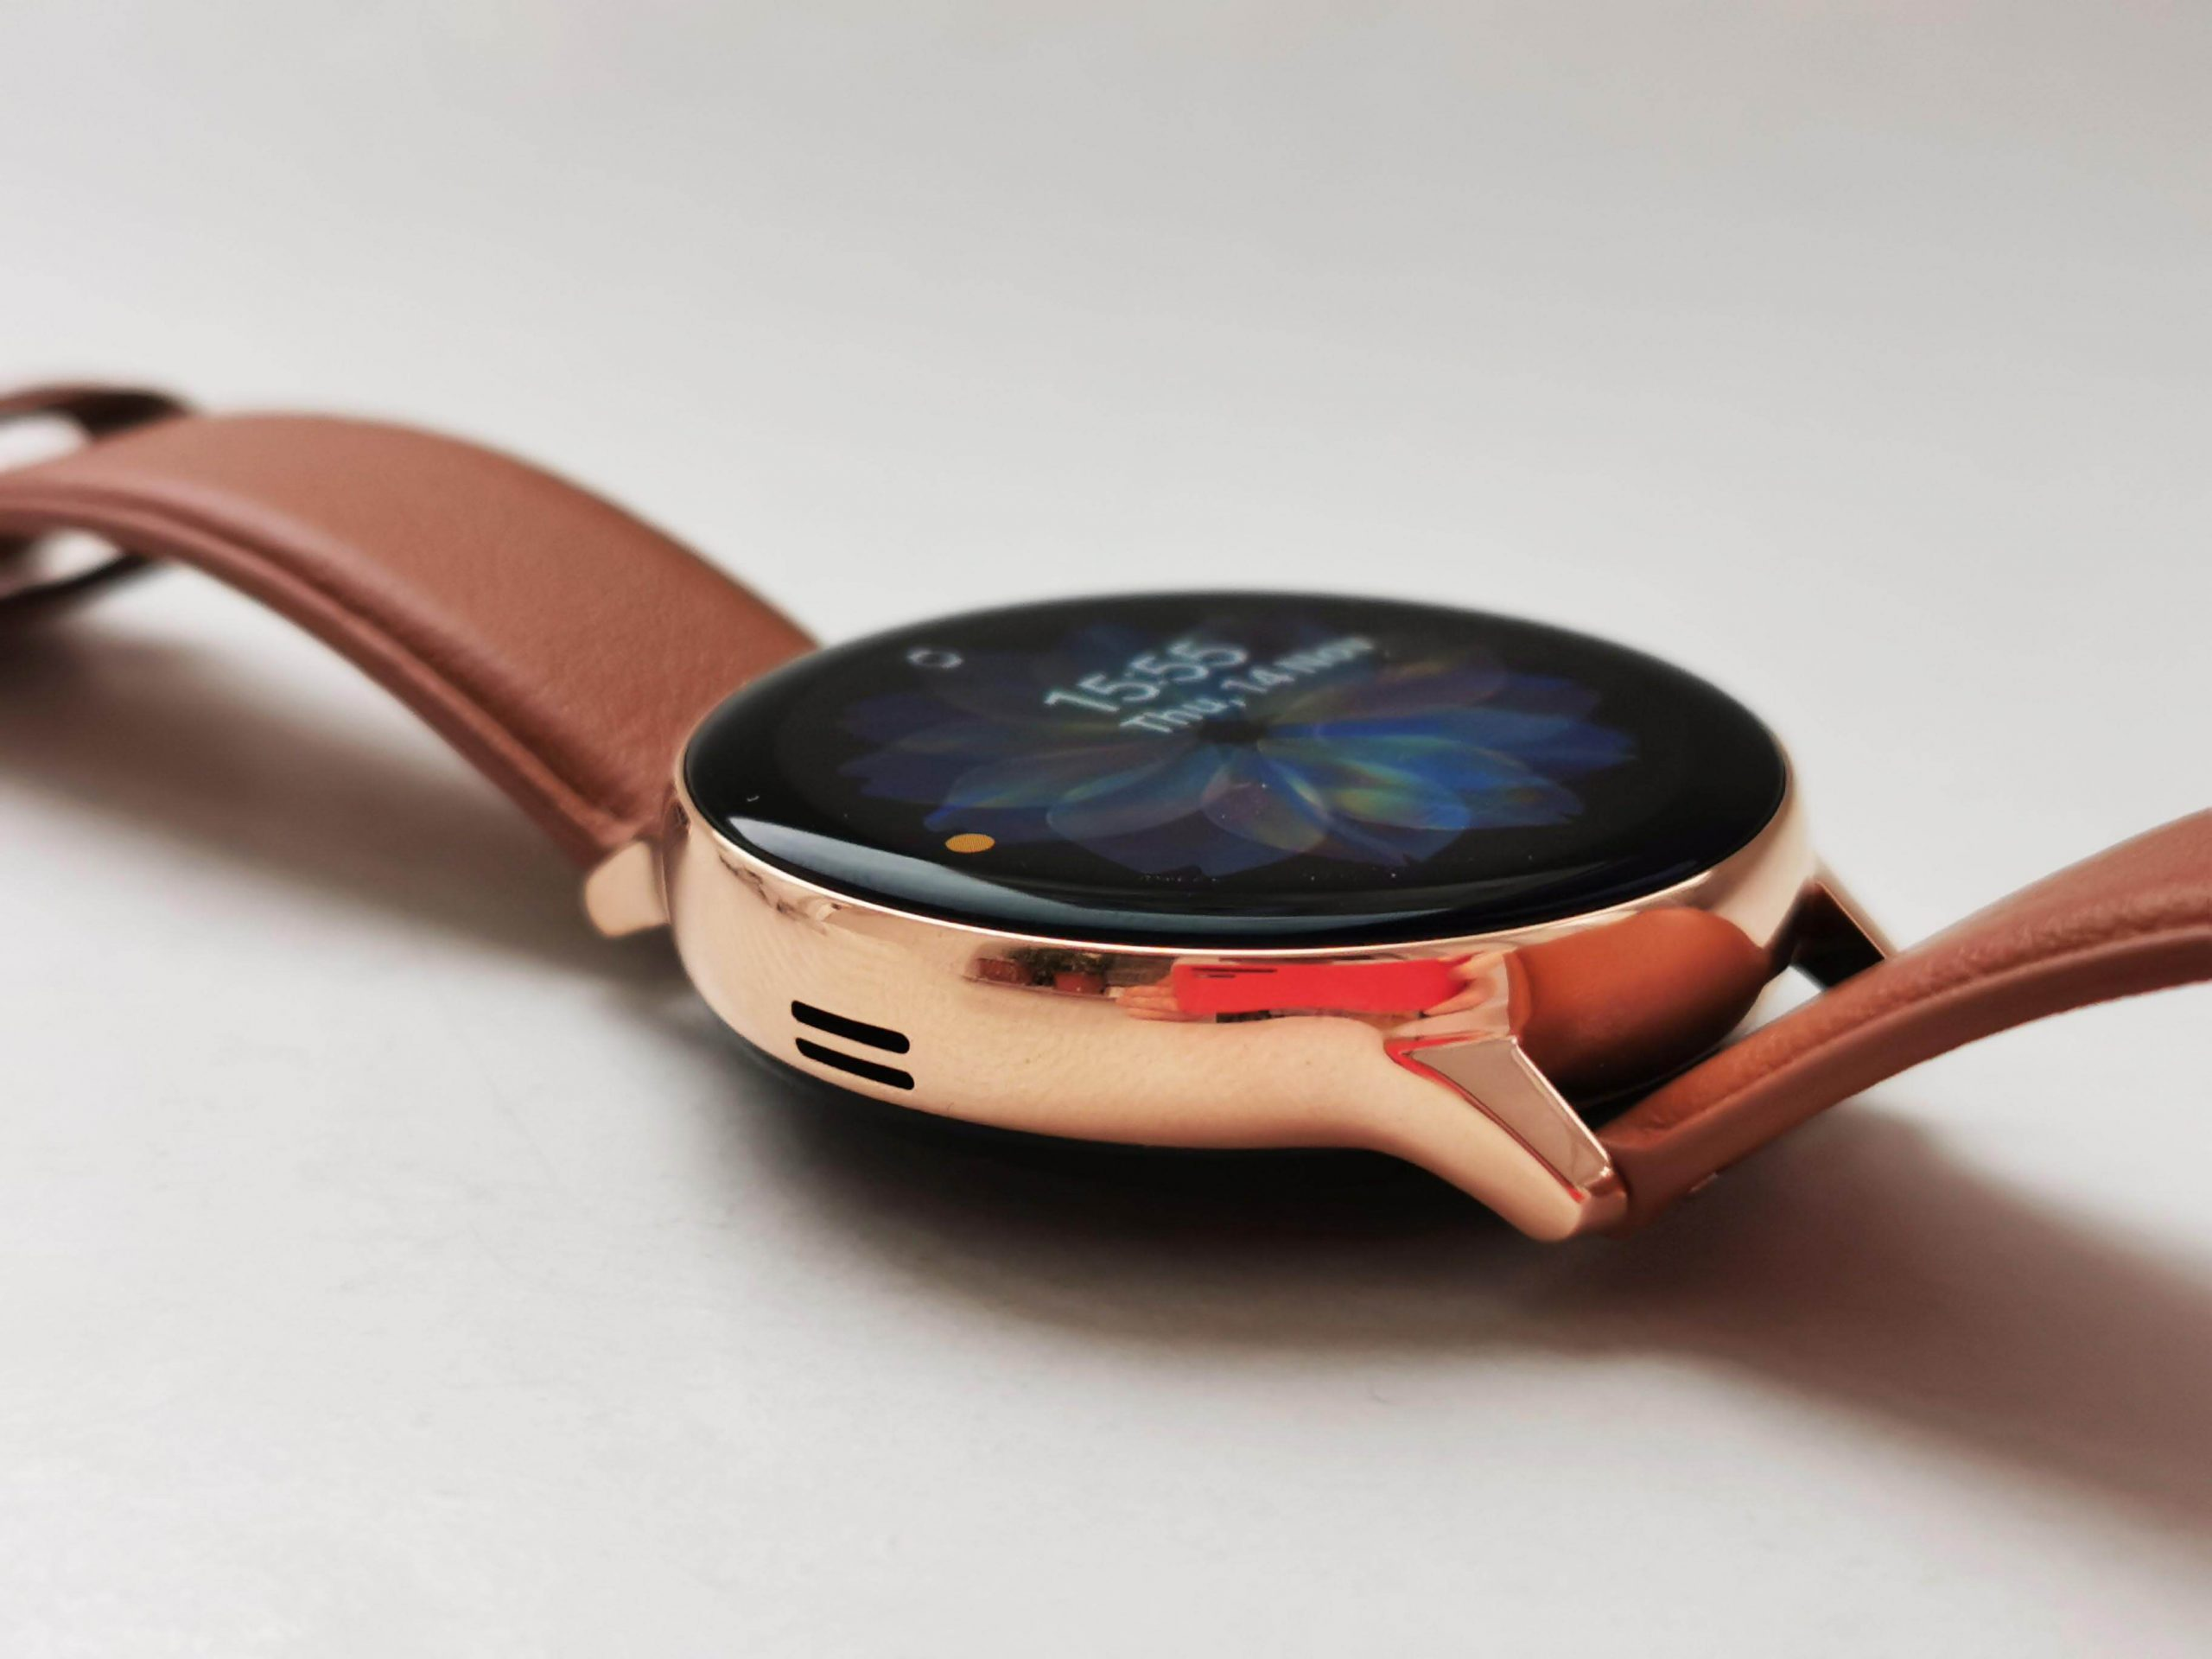 Samsung Galaxy Watch Active 2 Review Romana si Pareri - 8